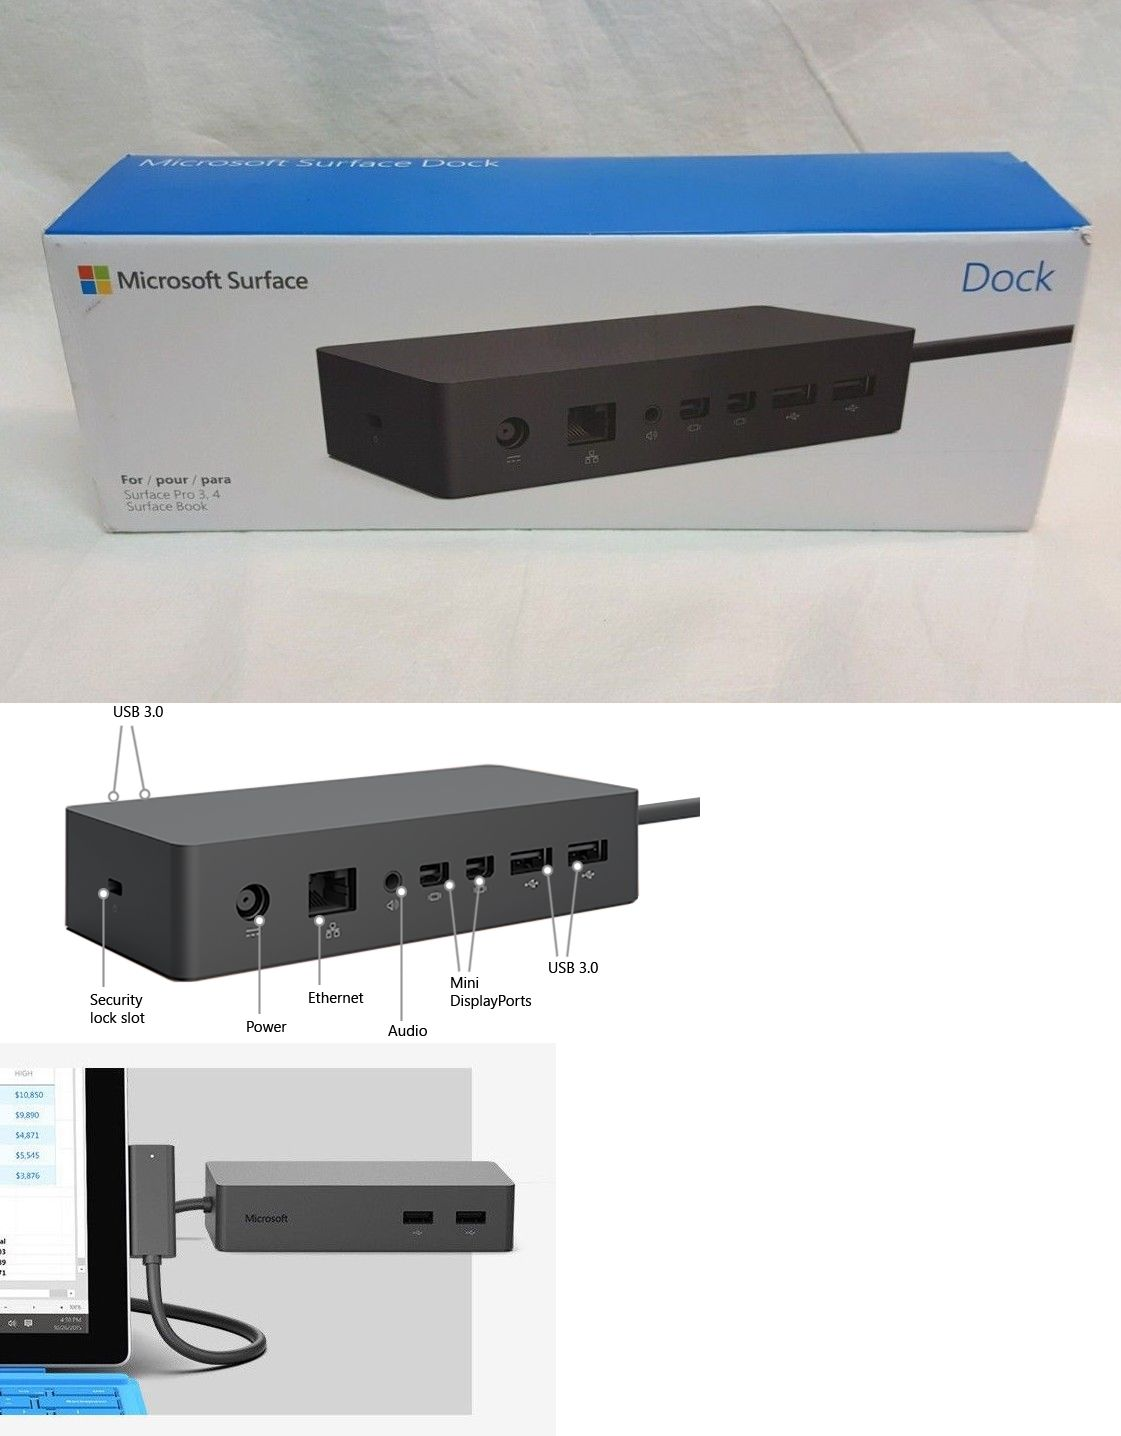 Docking Stations Keyboards 176975: Microsoft Surface Dock